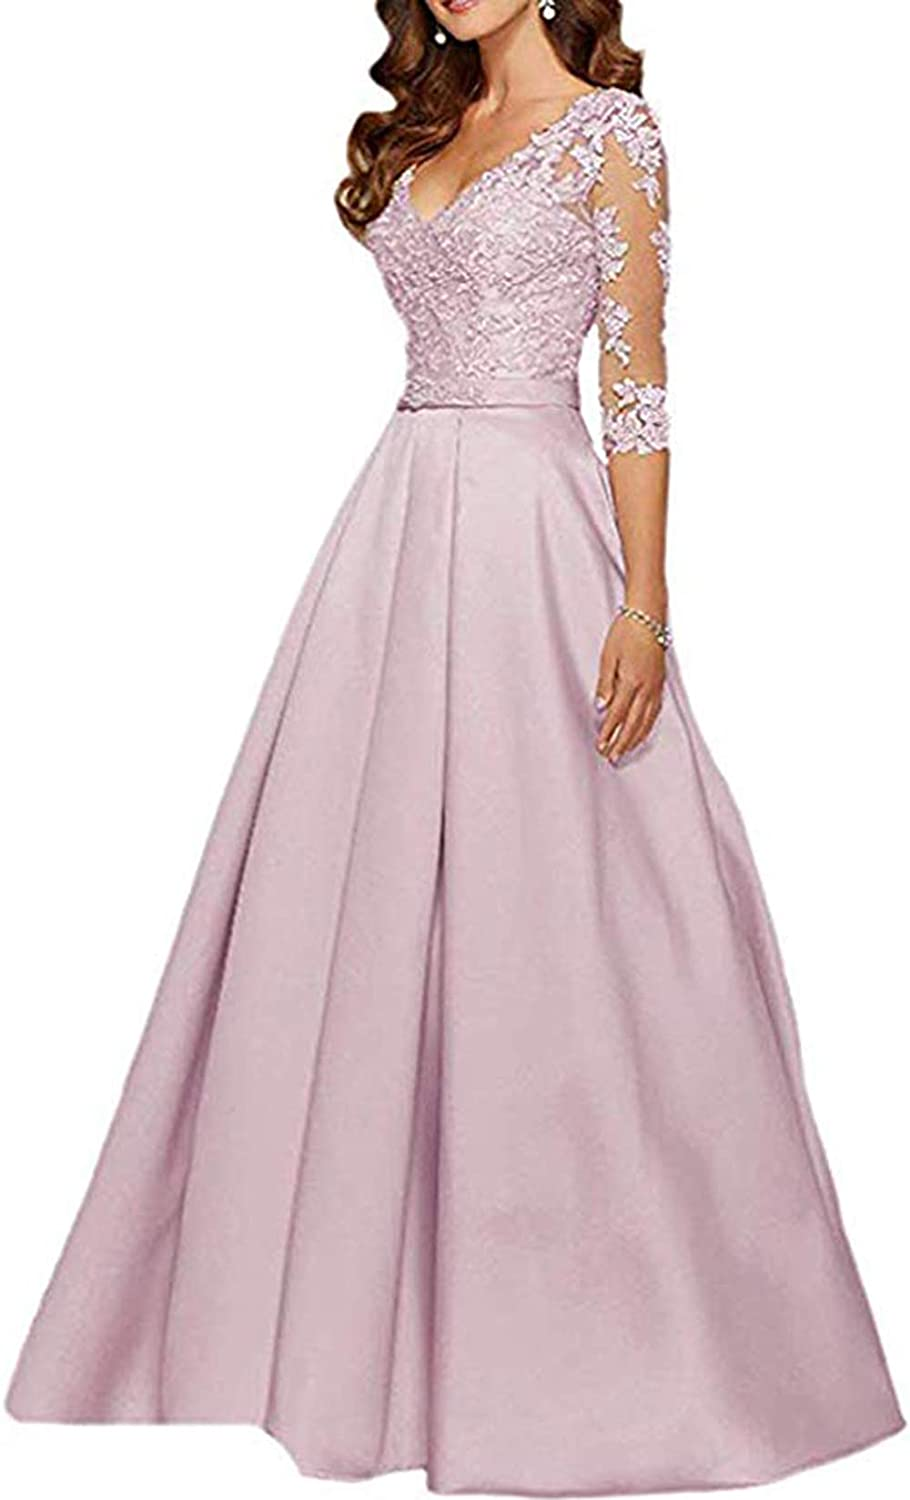 Light Pink Ri Yun Womens V Neck 3 4 Sleeves Prom Dresses Long 2019 Beaded Lace Mother of The Bride Dresses with Pockets